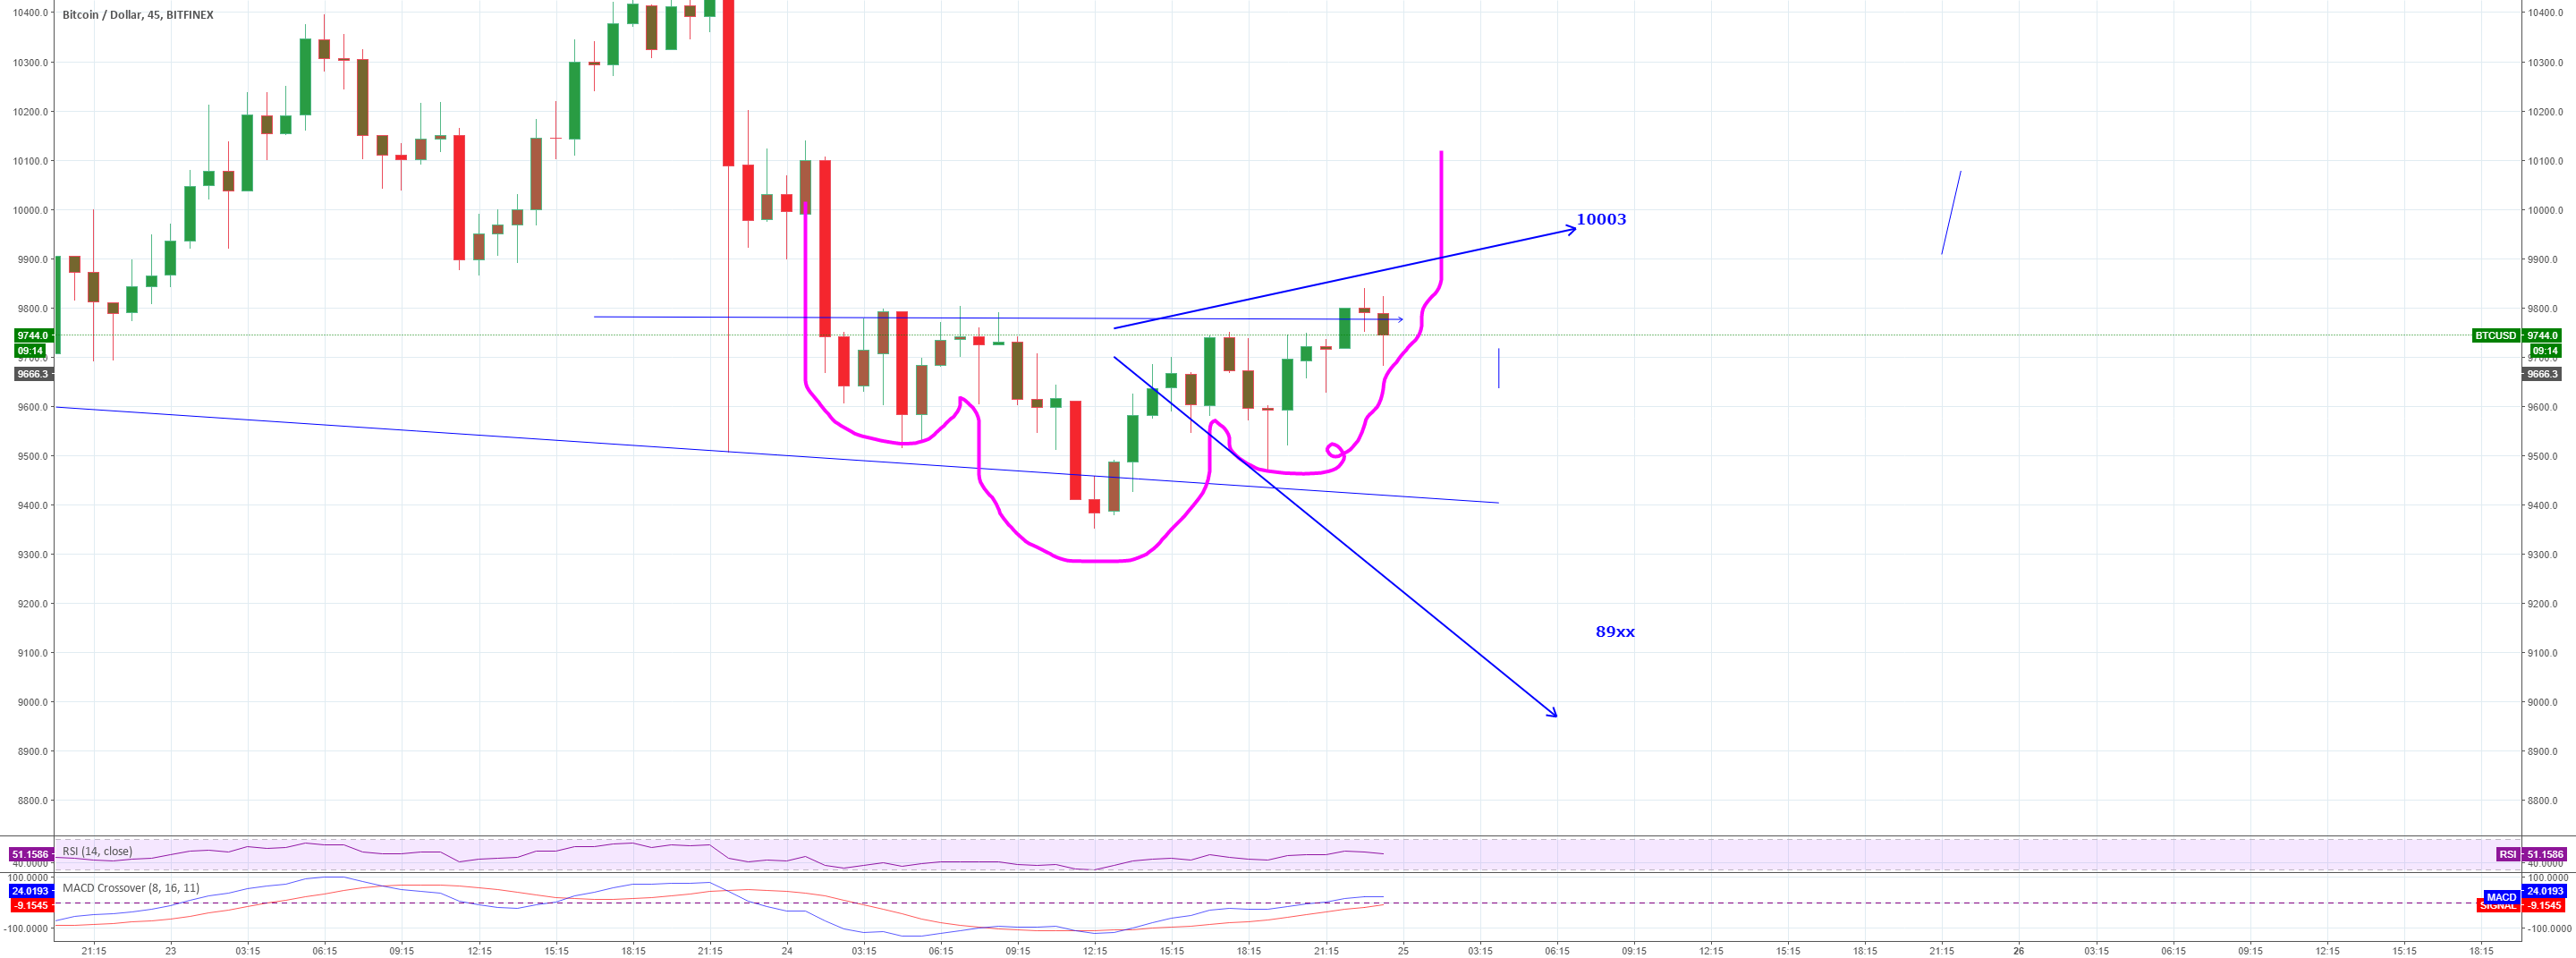 Inverted head and shoulders with 2 choices 89xx or 10003